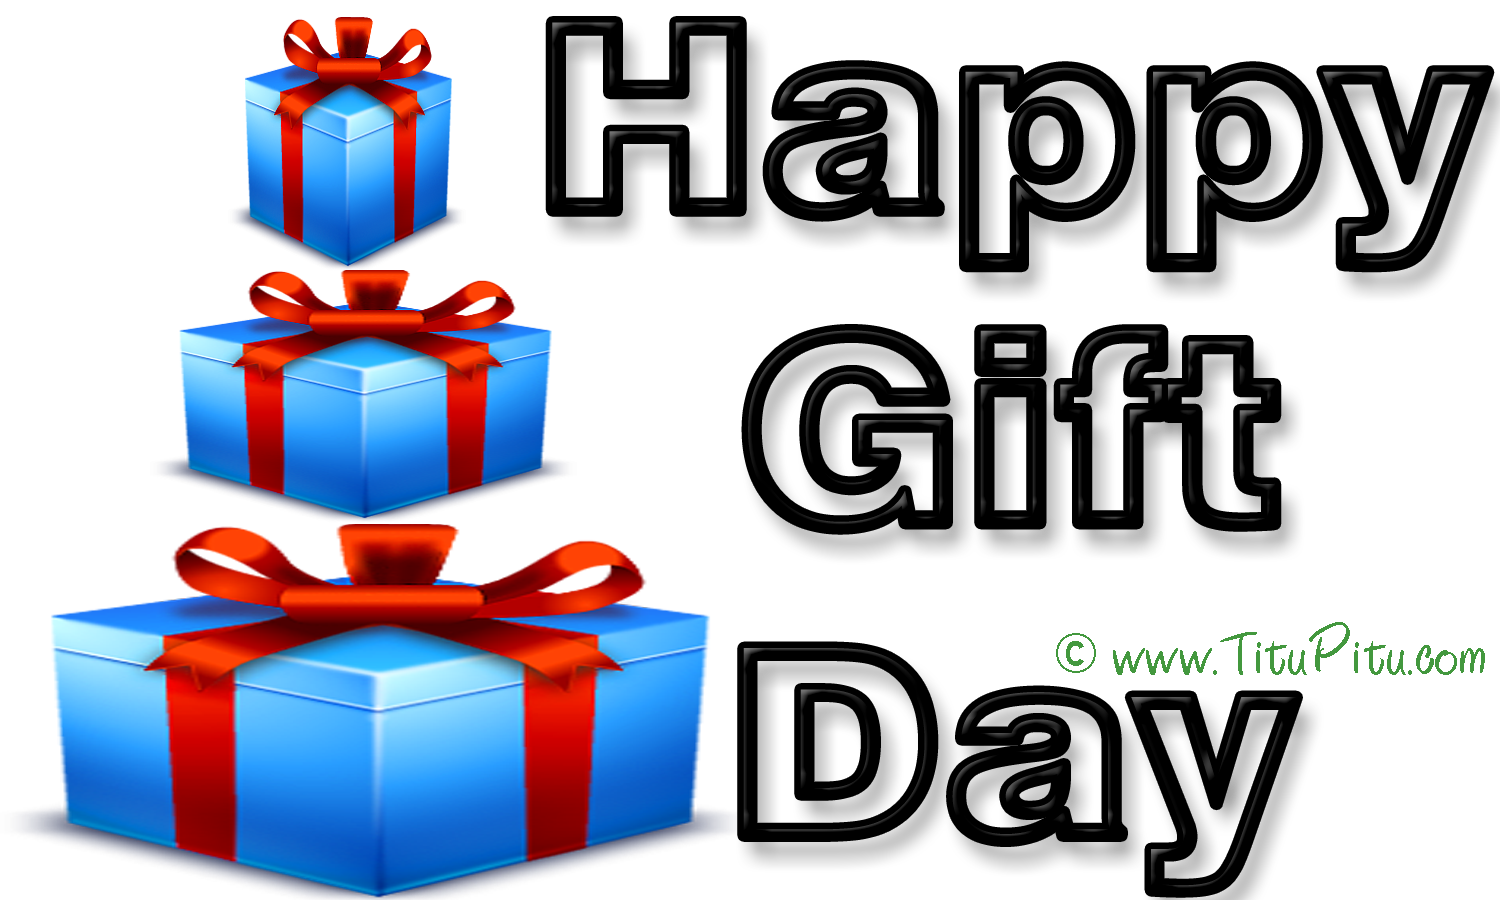 Gift-day-wallpaper